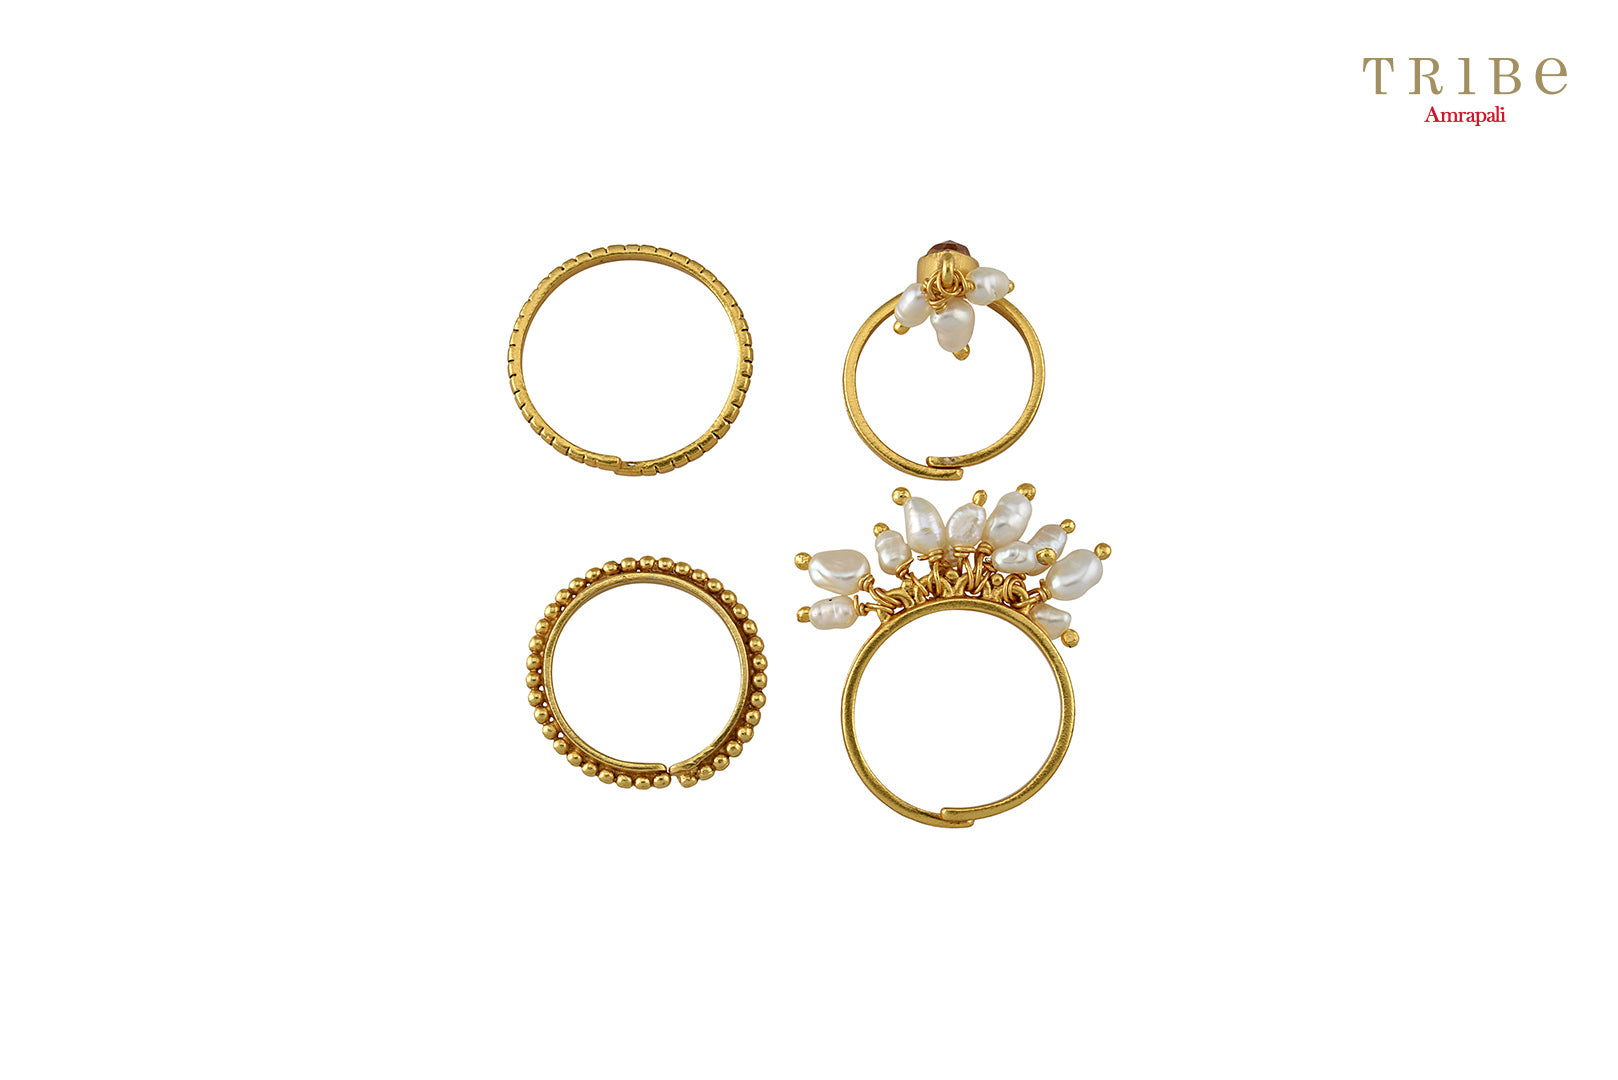 Buy silver gold plated pearl citrine stacking rings online in USA by Amrapali. The delicate rings are a perfect way to decorate your hands. If you want to shop such ethnic Indian silver gold plated jewelry in USA, then look no further than Pure Elegance. You can shop at our exclusive fashion store or online.-front look